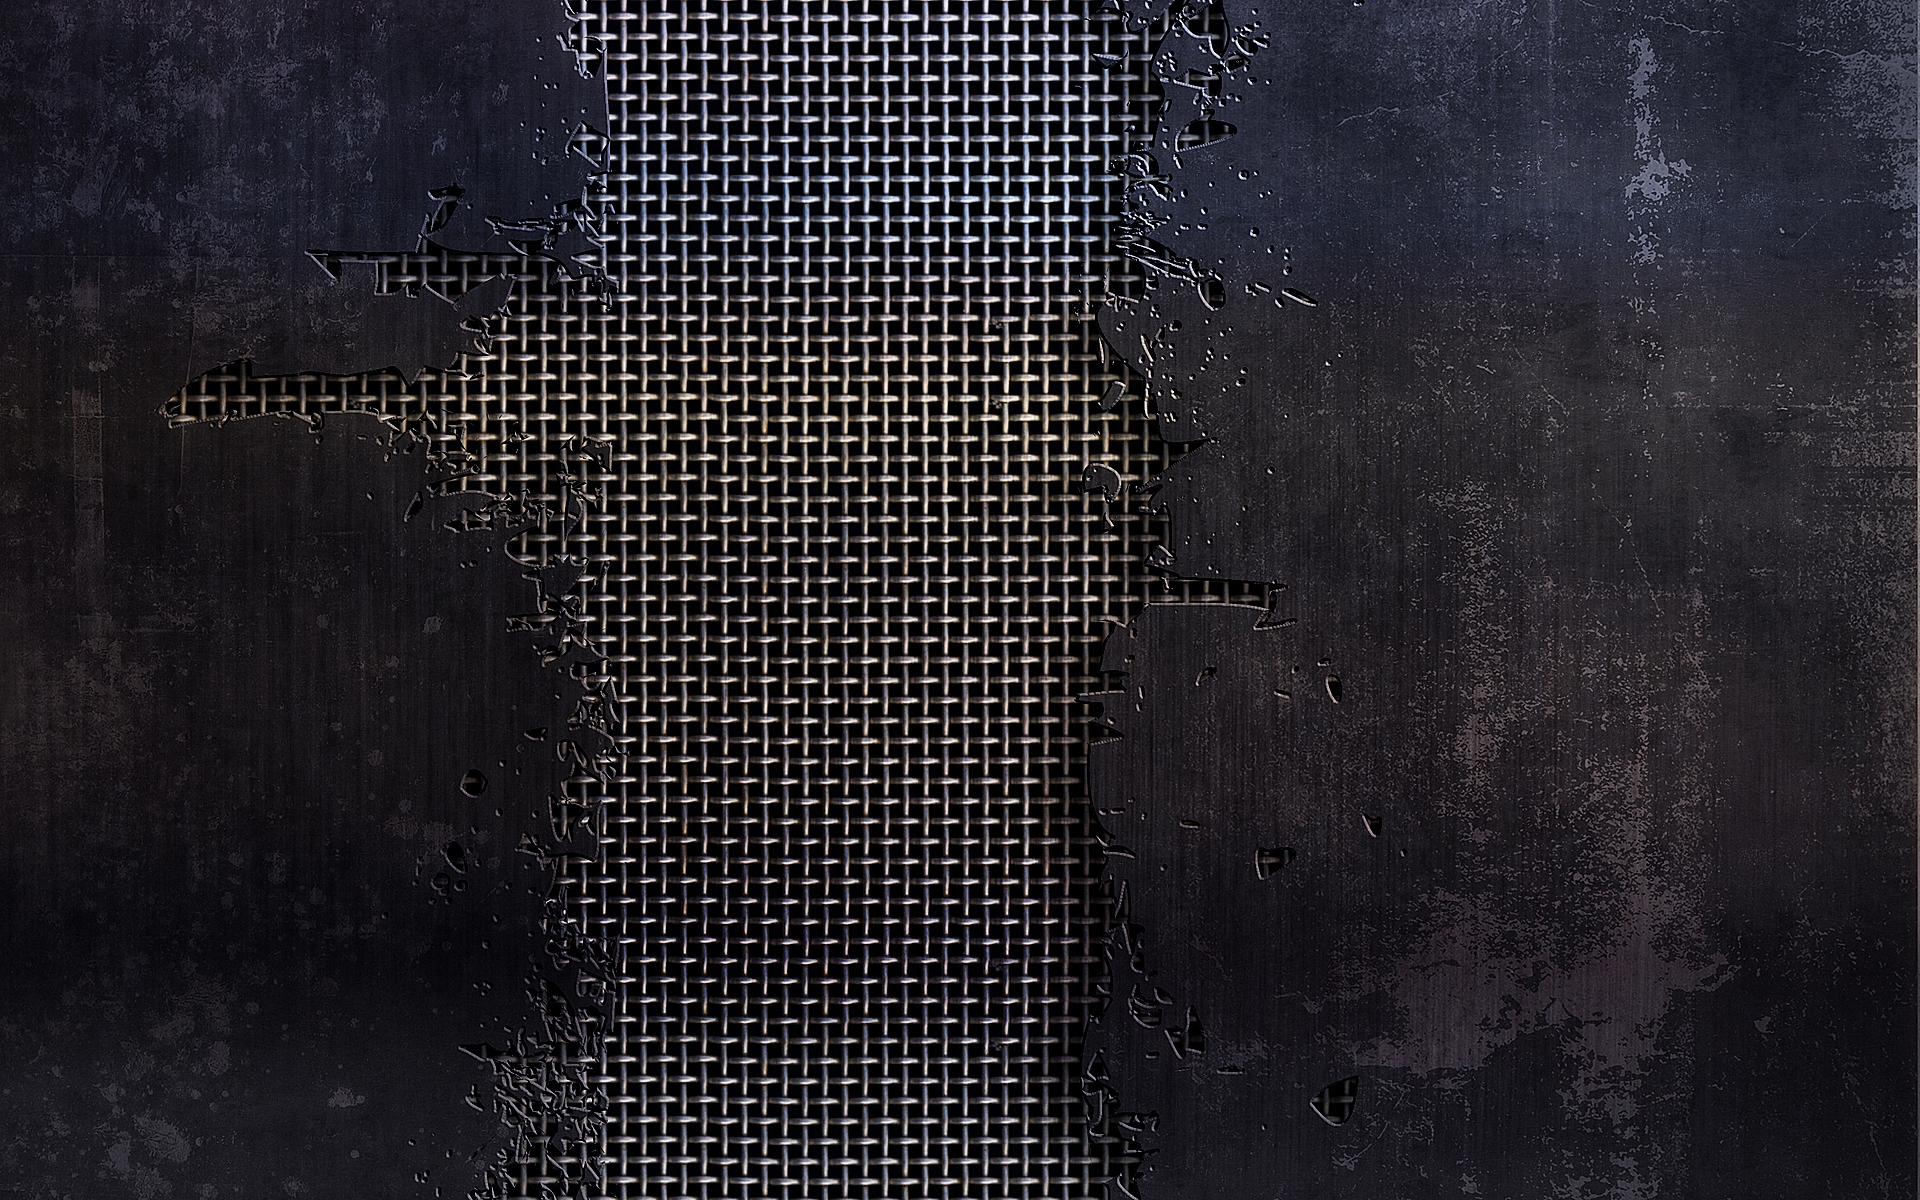 wall, grille, texture, download photo, background